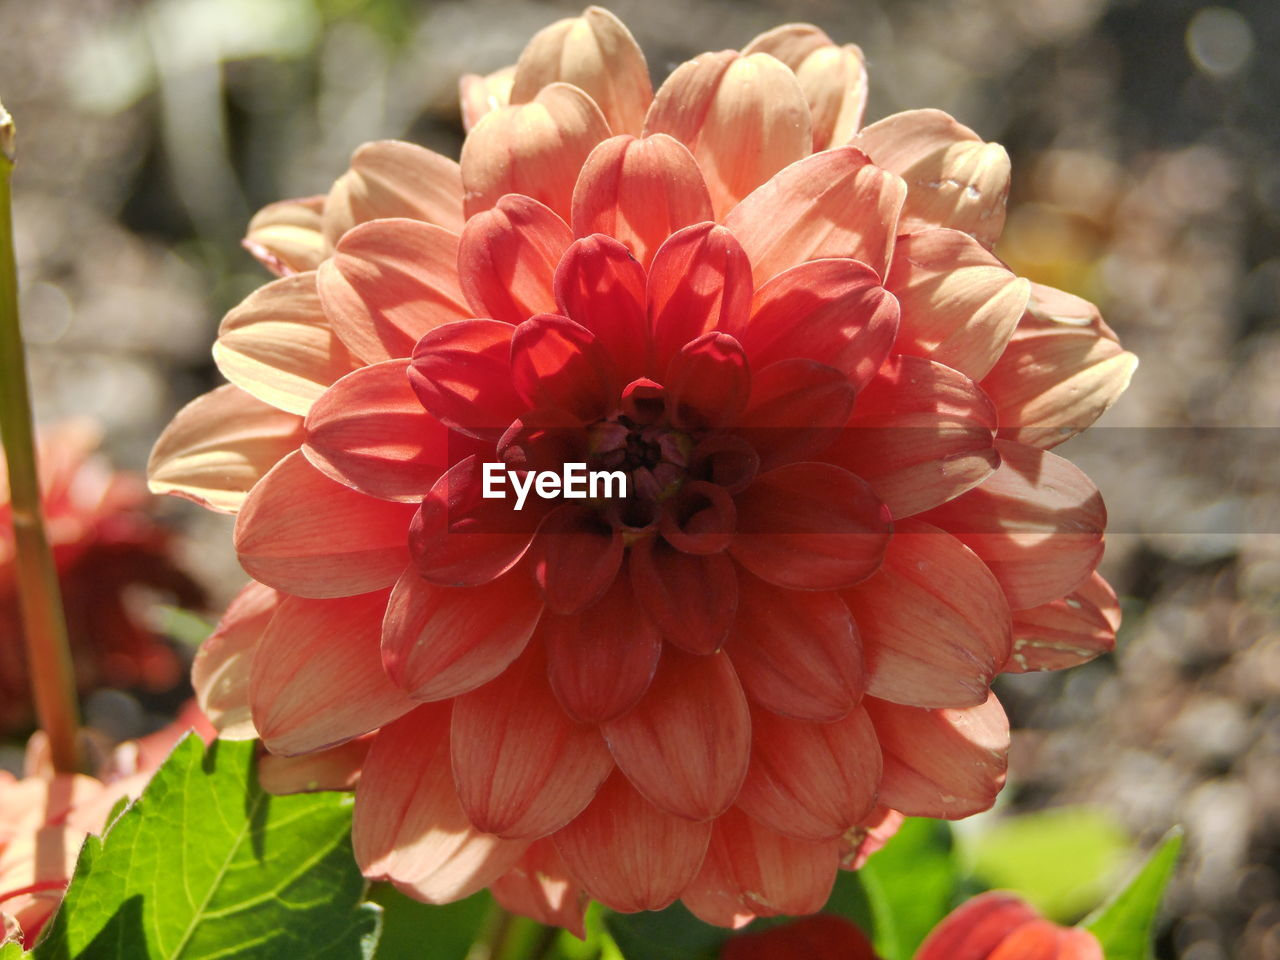 flower, petal, flower head, beauty in nature, fragility, nature, freshness, growth, focus on foreground, blooming, plant, close-up, red, dahlia, day, outdoors, zinnia, no people